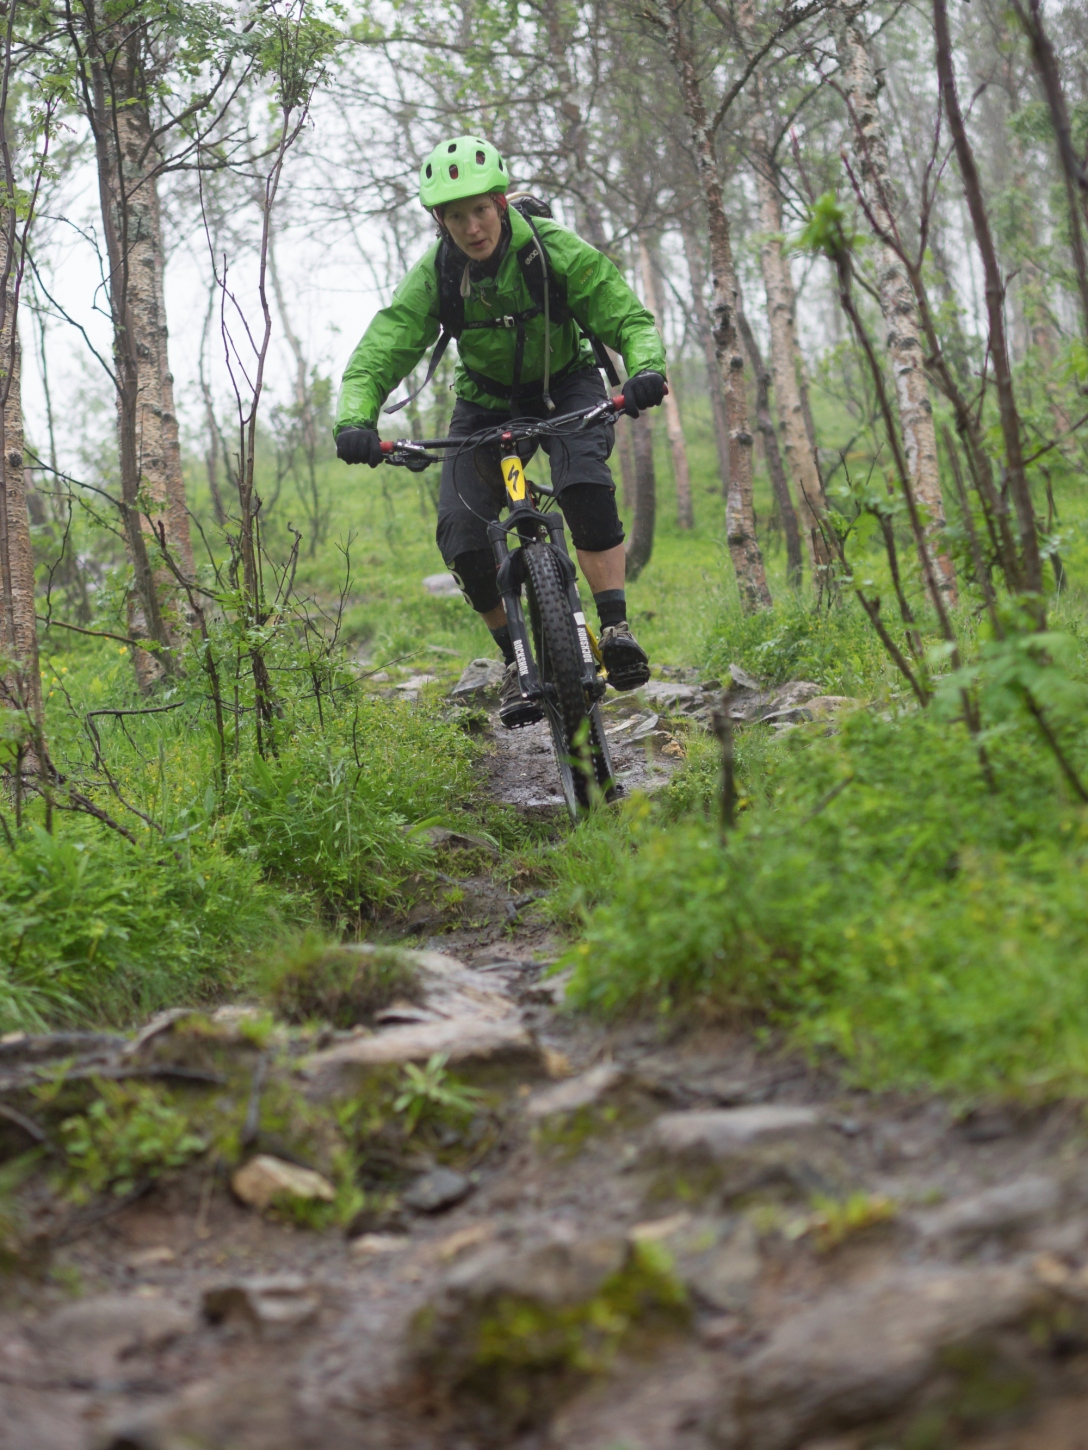 Sliding down some rocks and mud in Tromsdalen. Photo by Martin.